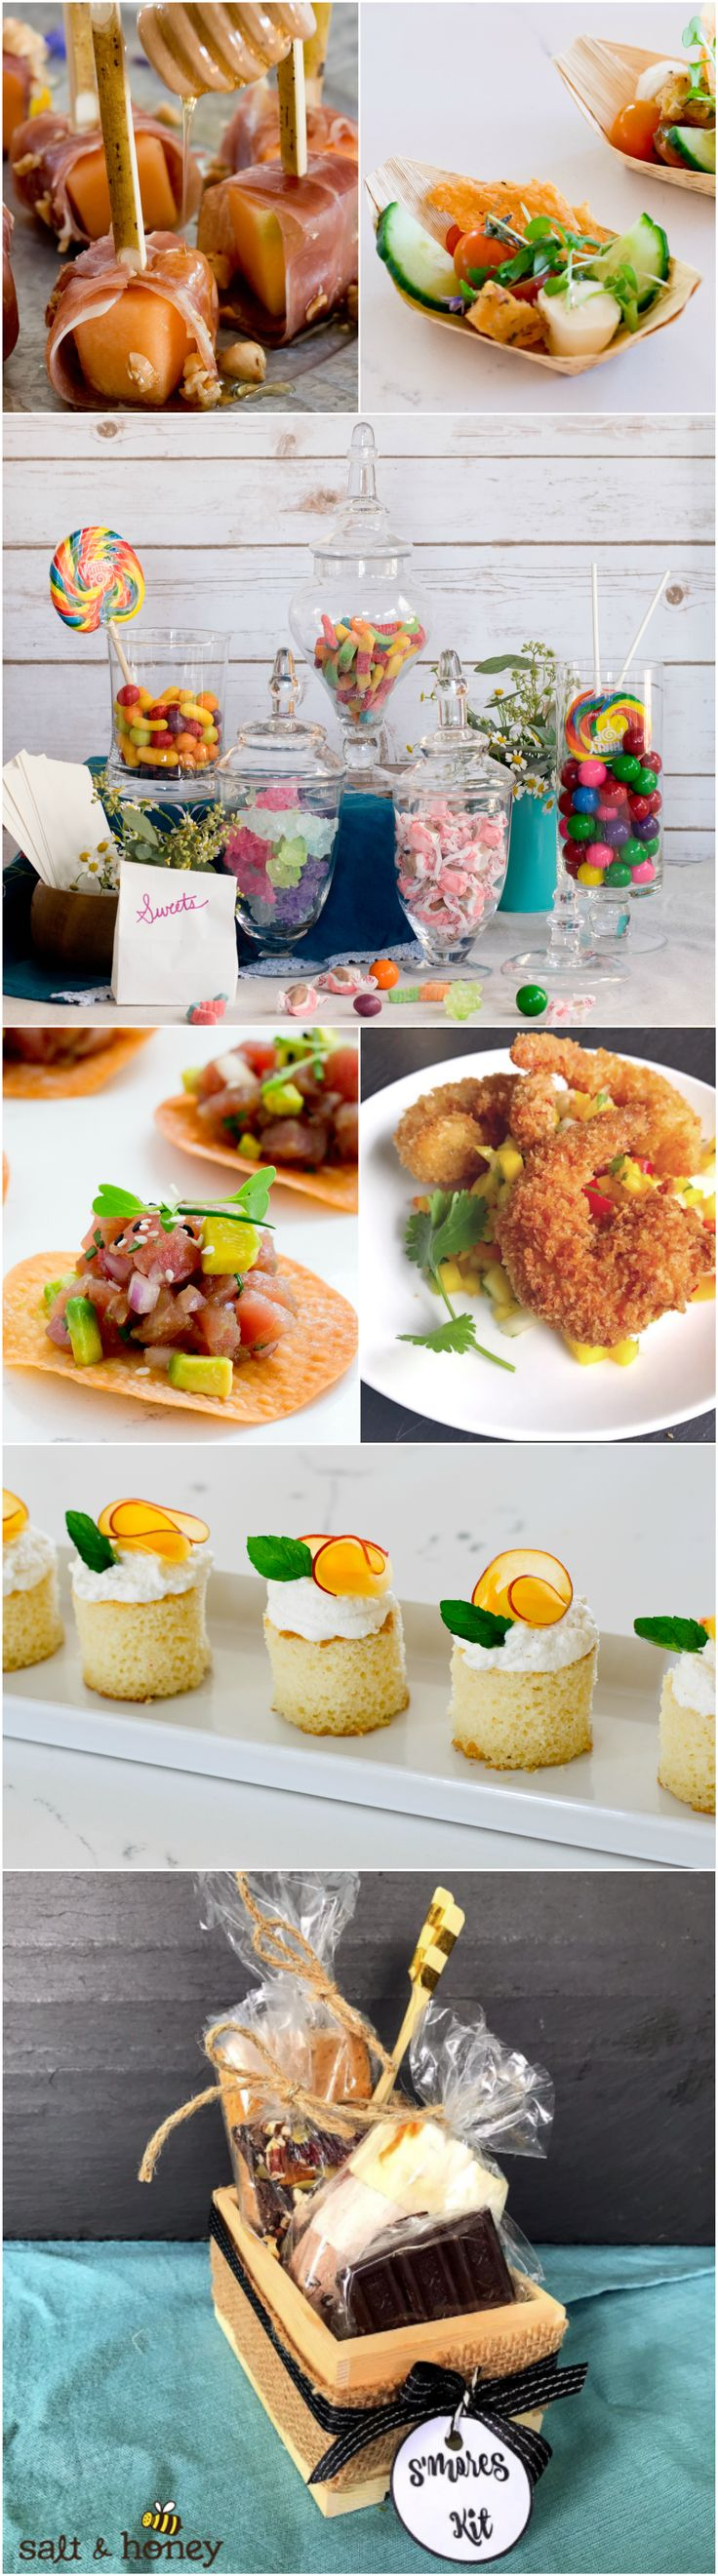 211 best wedding catering u0026 food images on pinterest wedding